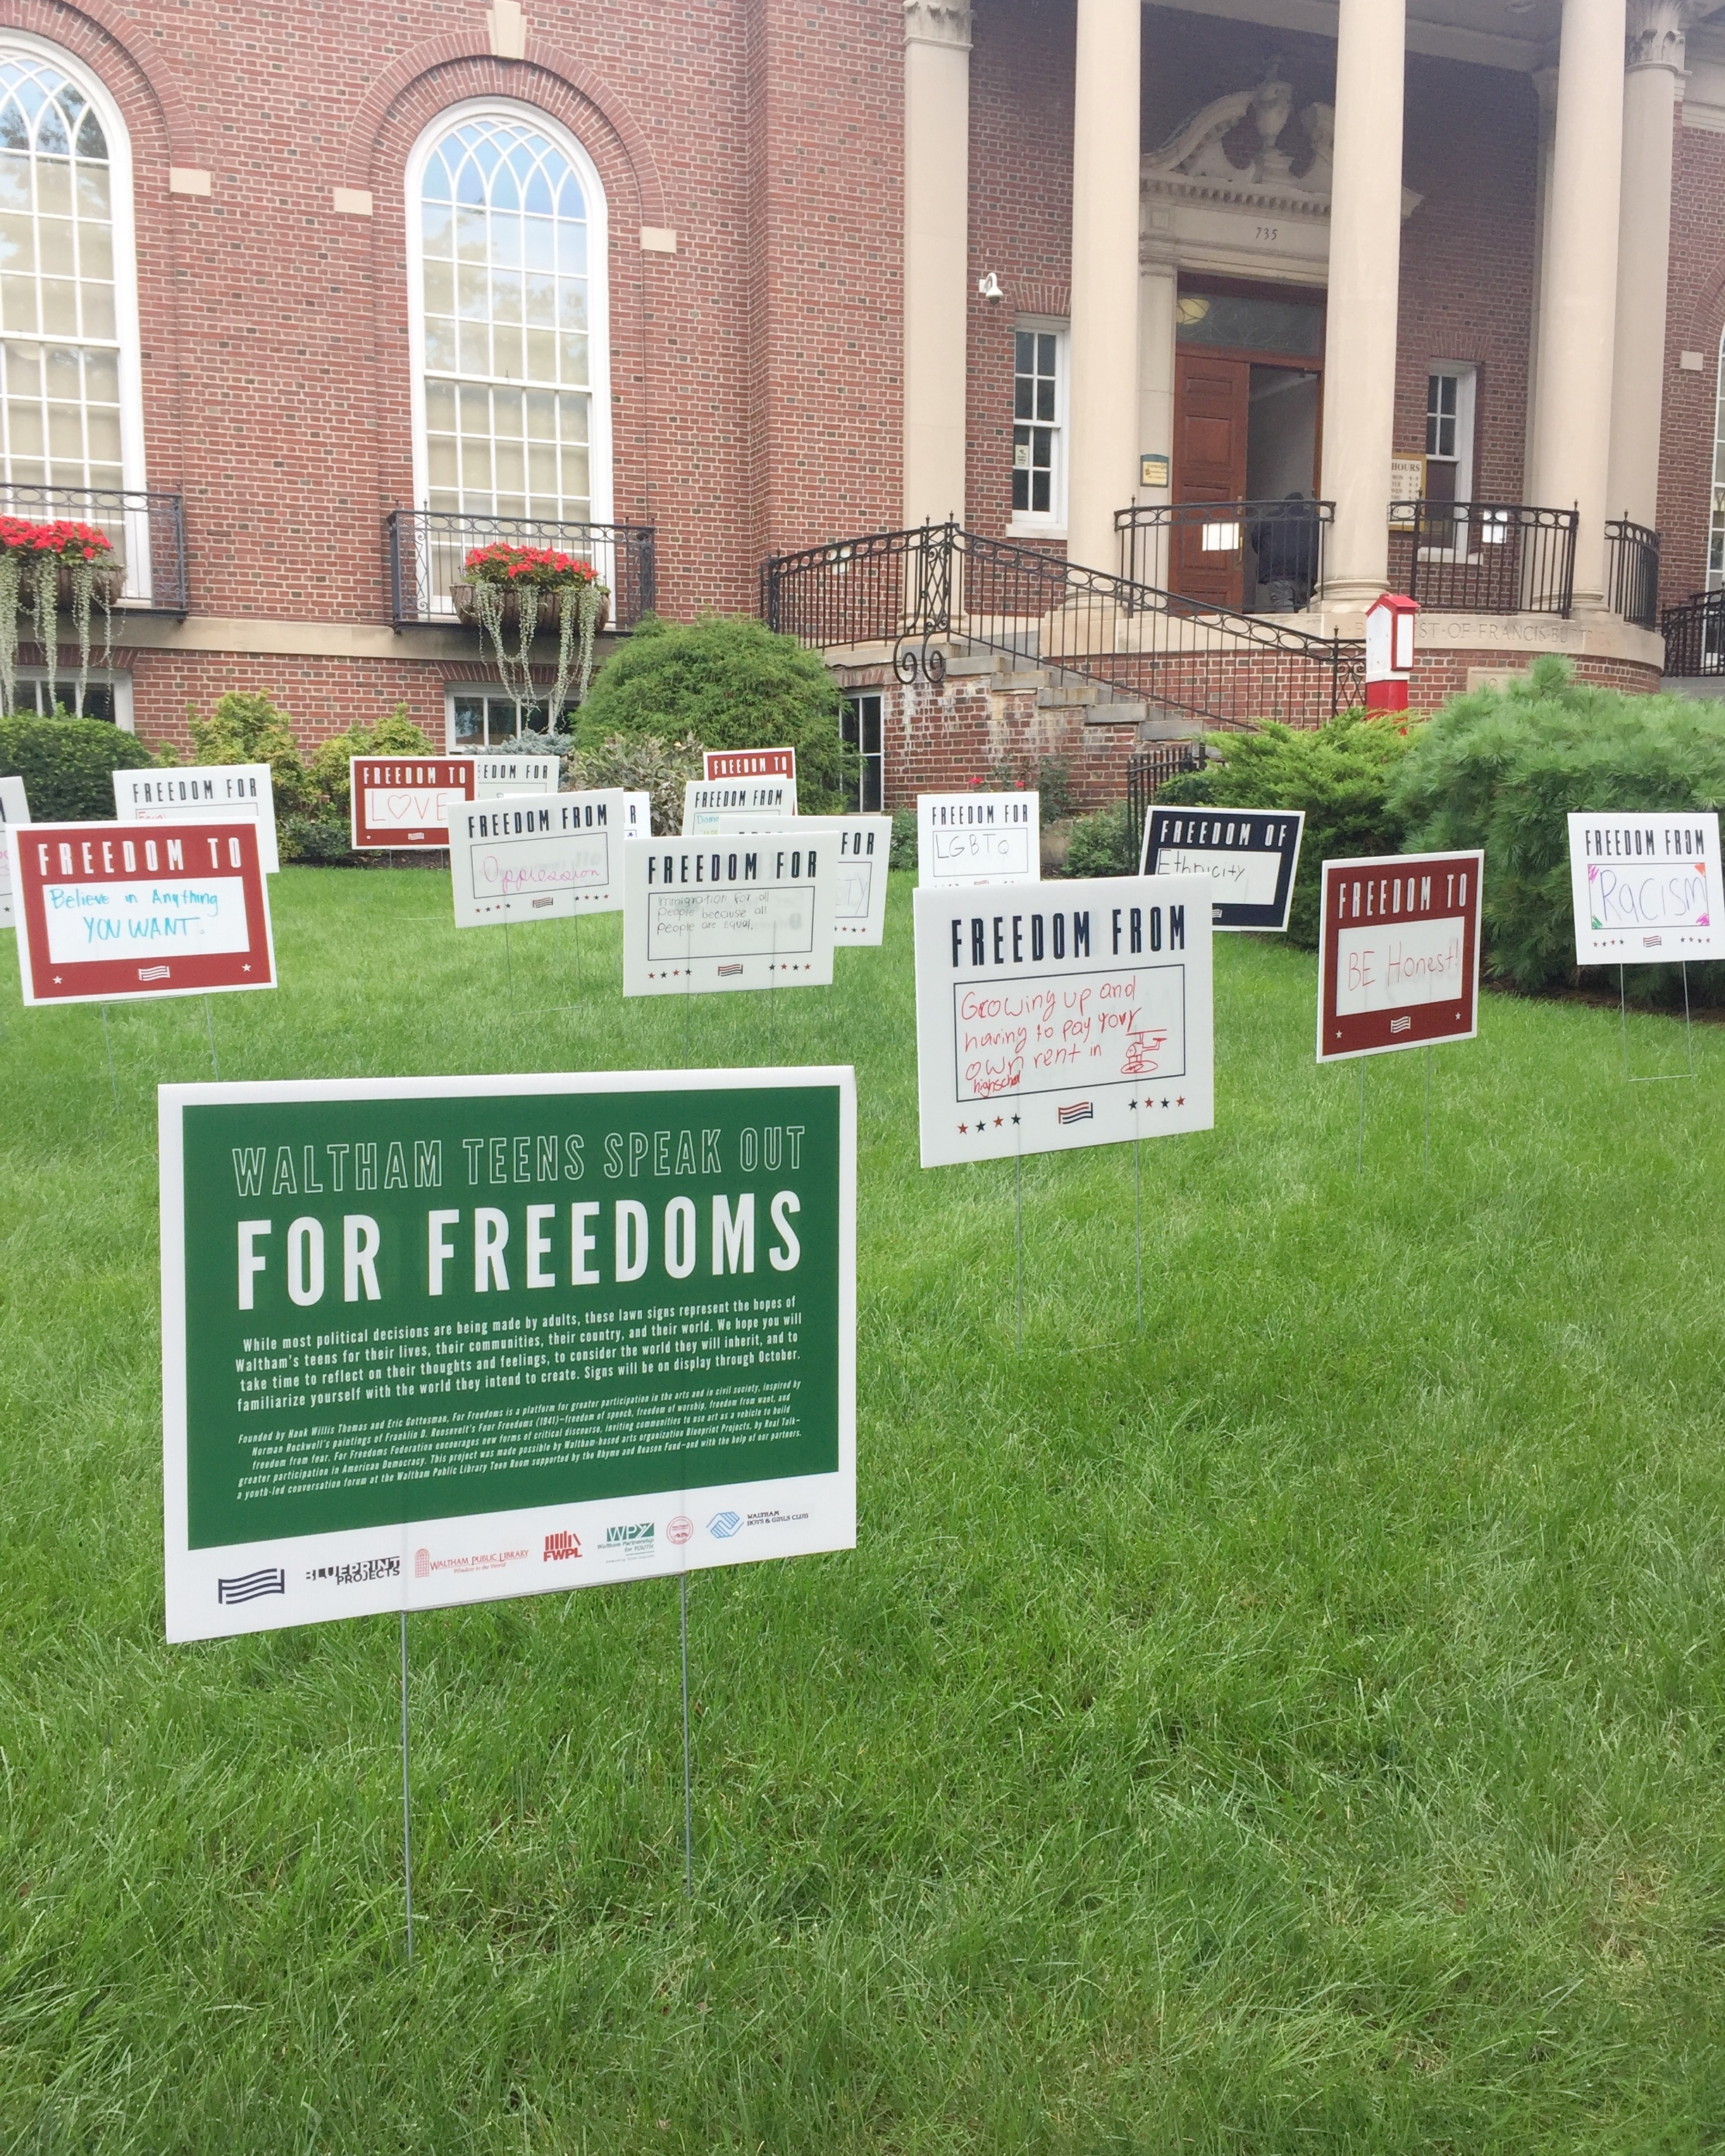 Blueprint Projects + Waltham Public Library Teen Room to host Lawn Sign Activation